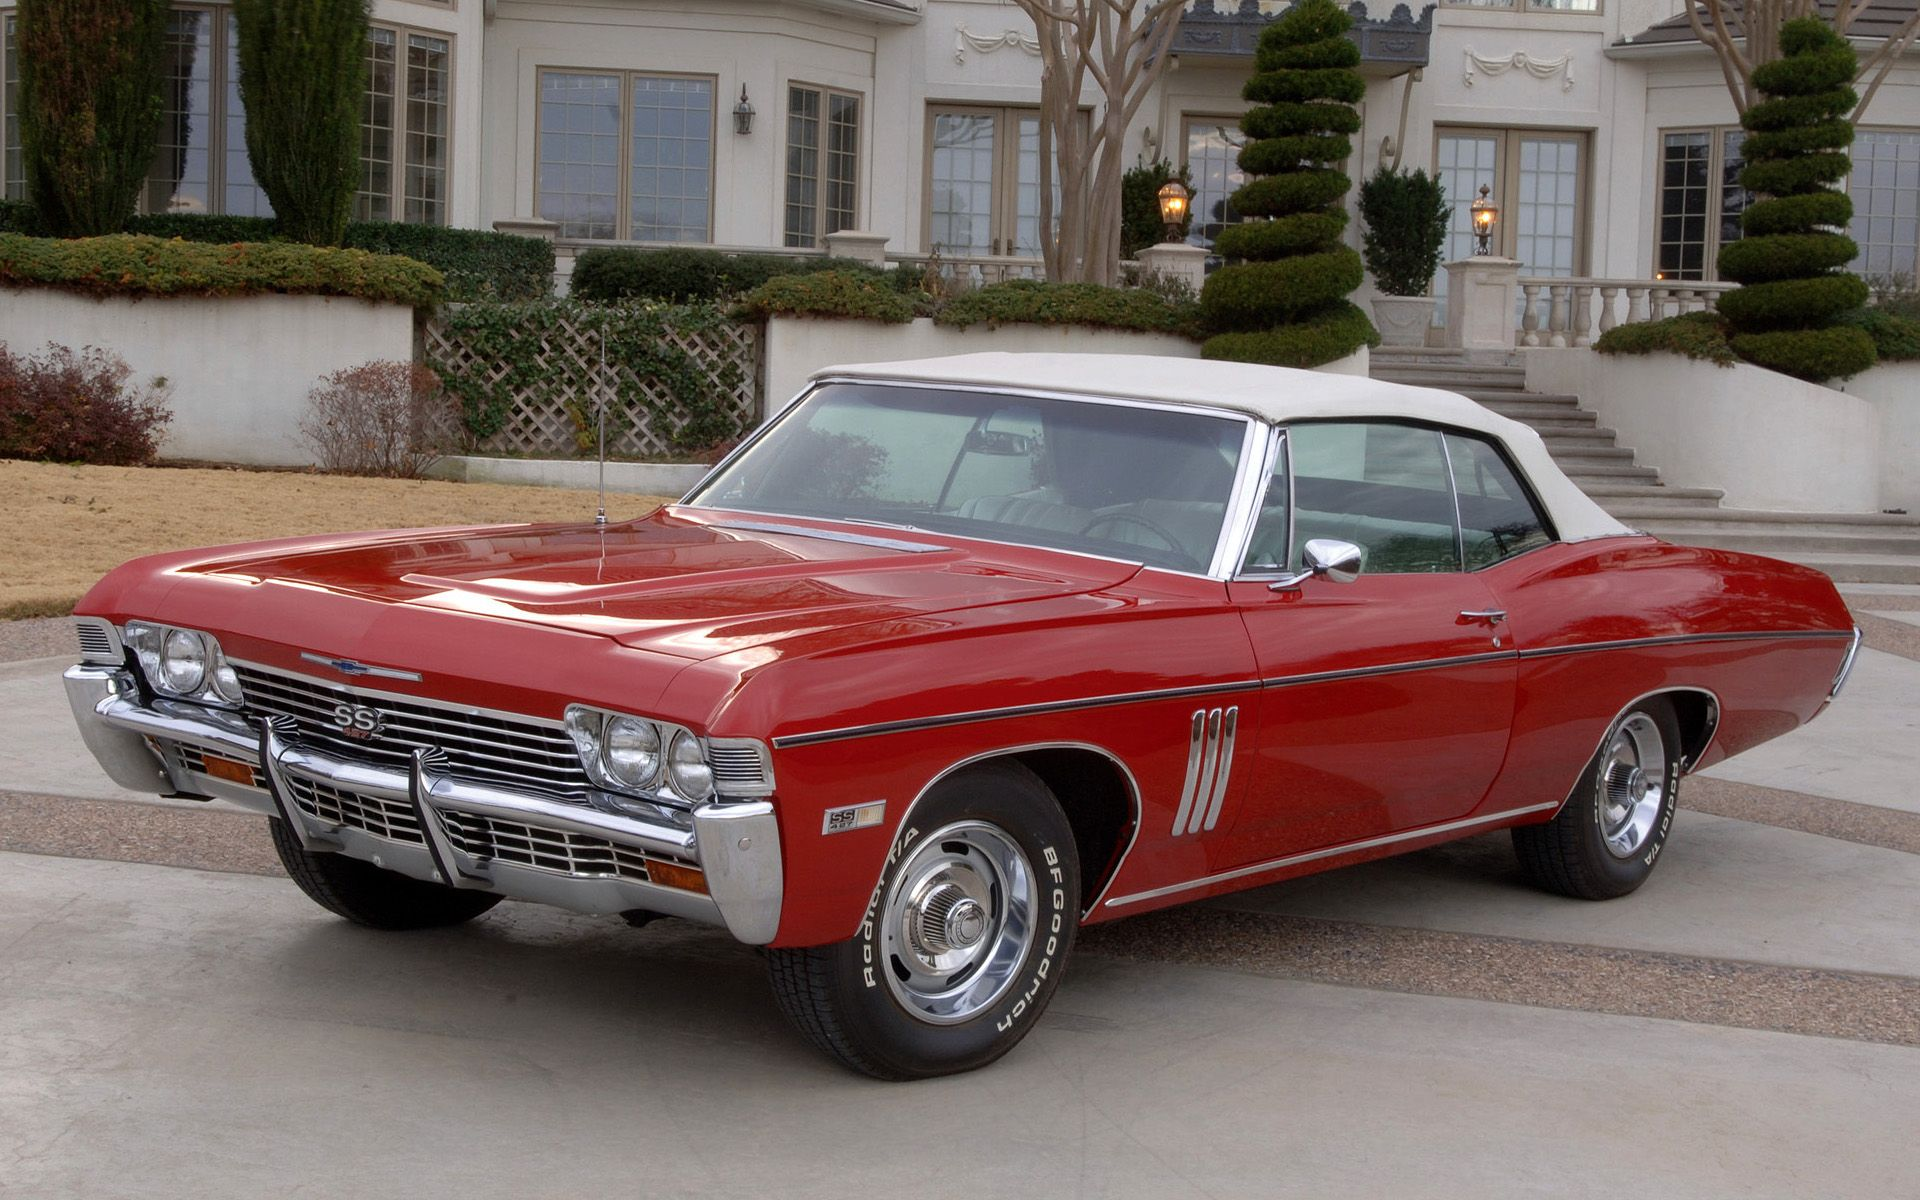 1968 chevrolet impala s s 427 convertible classic muscle